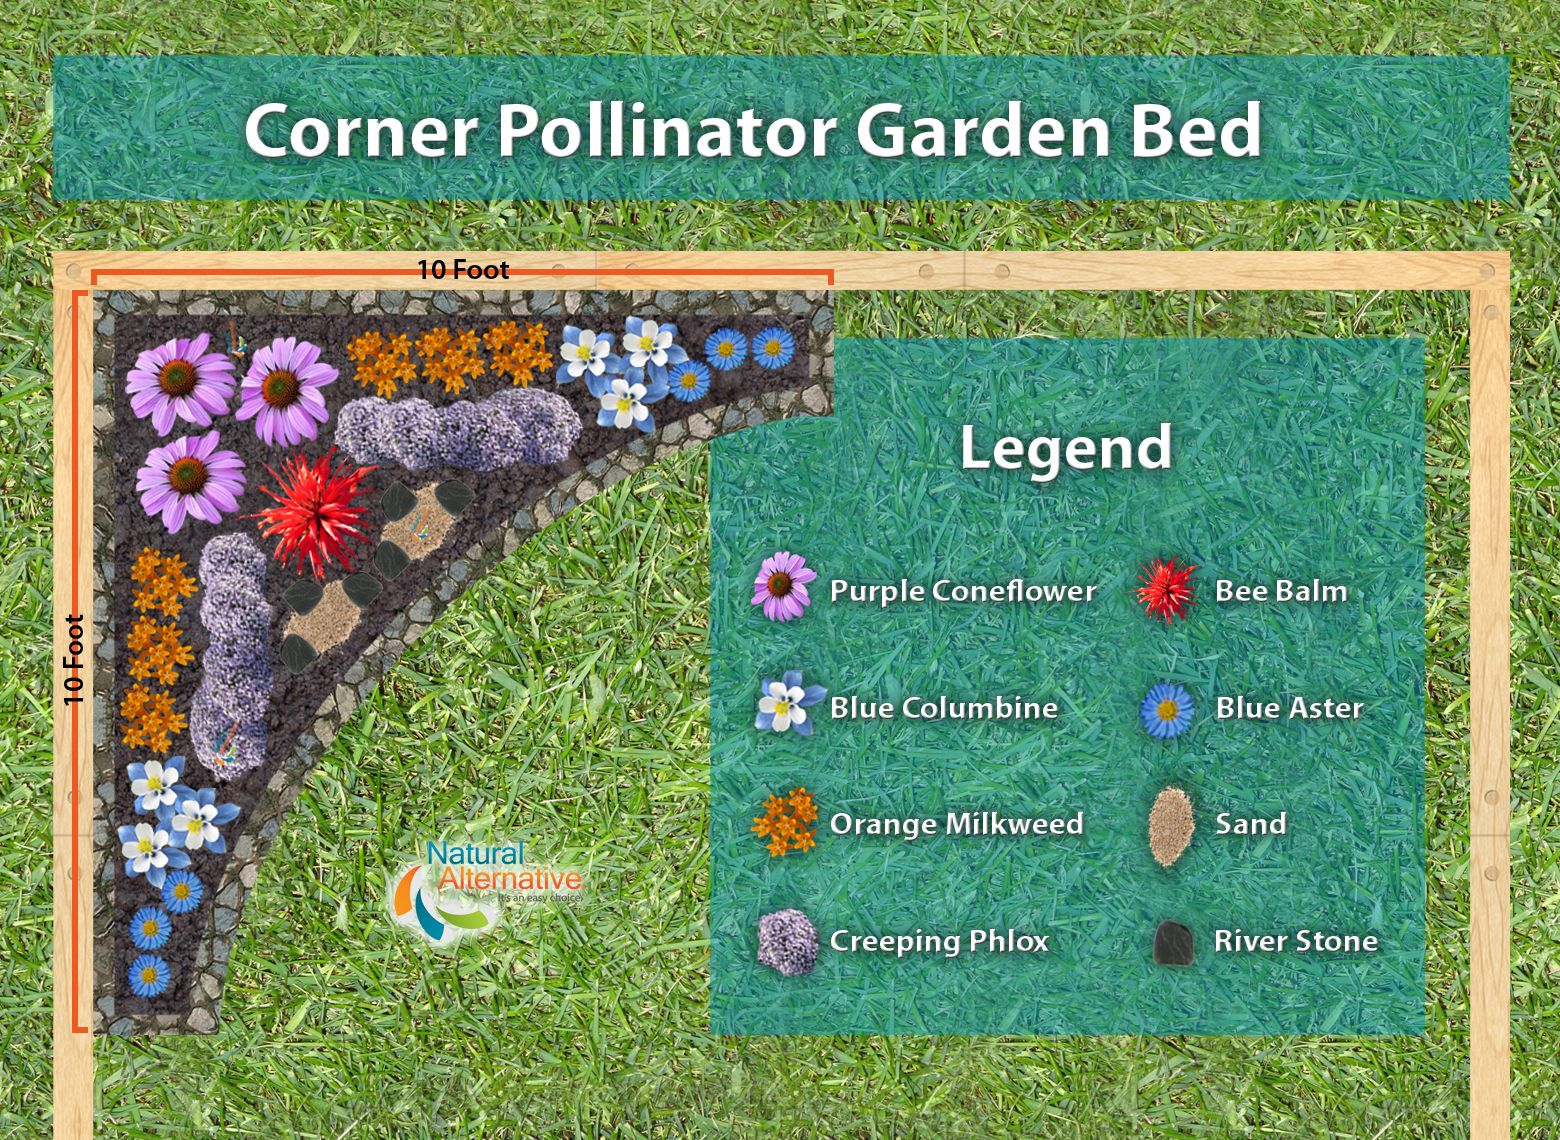 A Corner Pollinator Garden Plan To Help You Naturally Attract Pollinators  To Your Garden. This